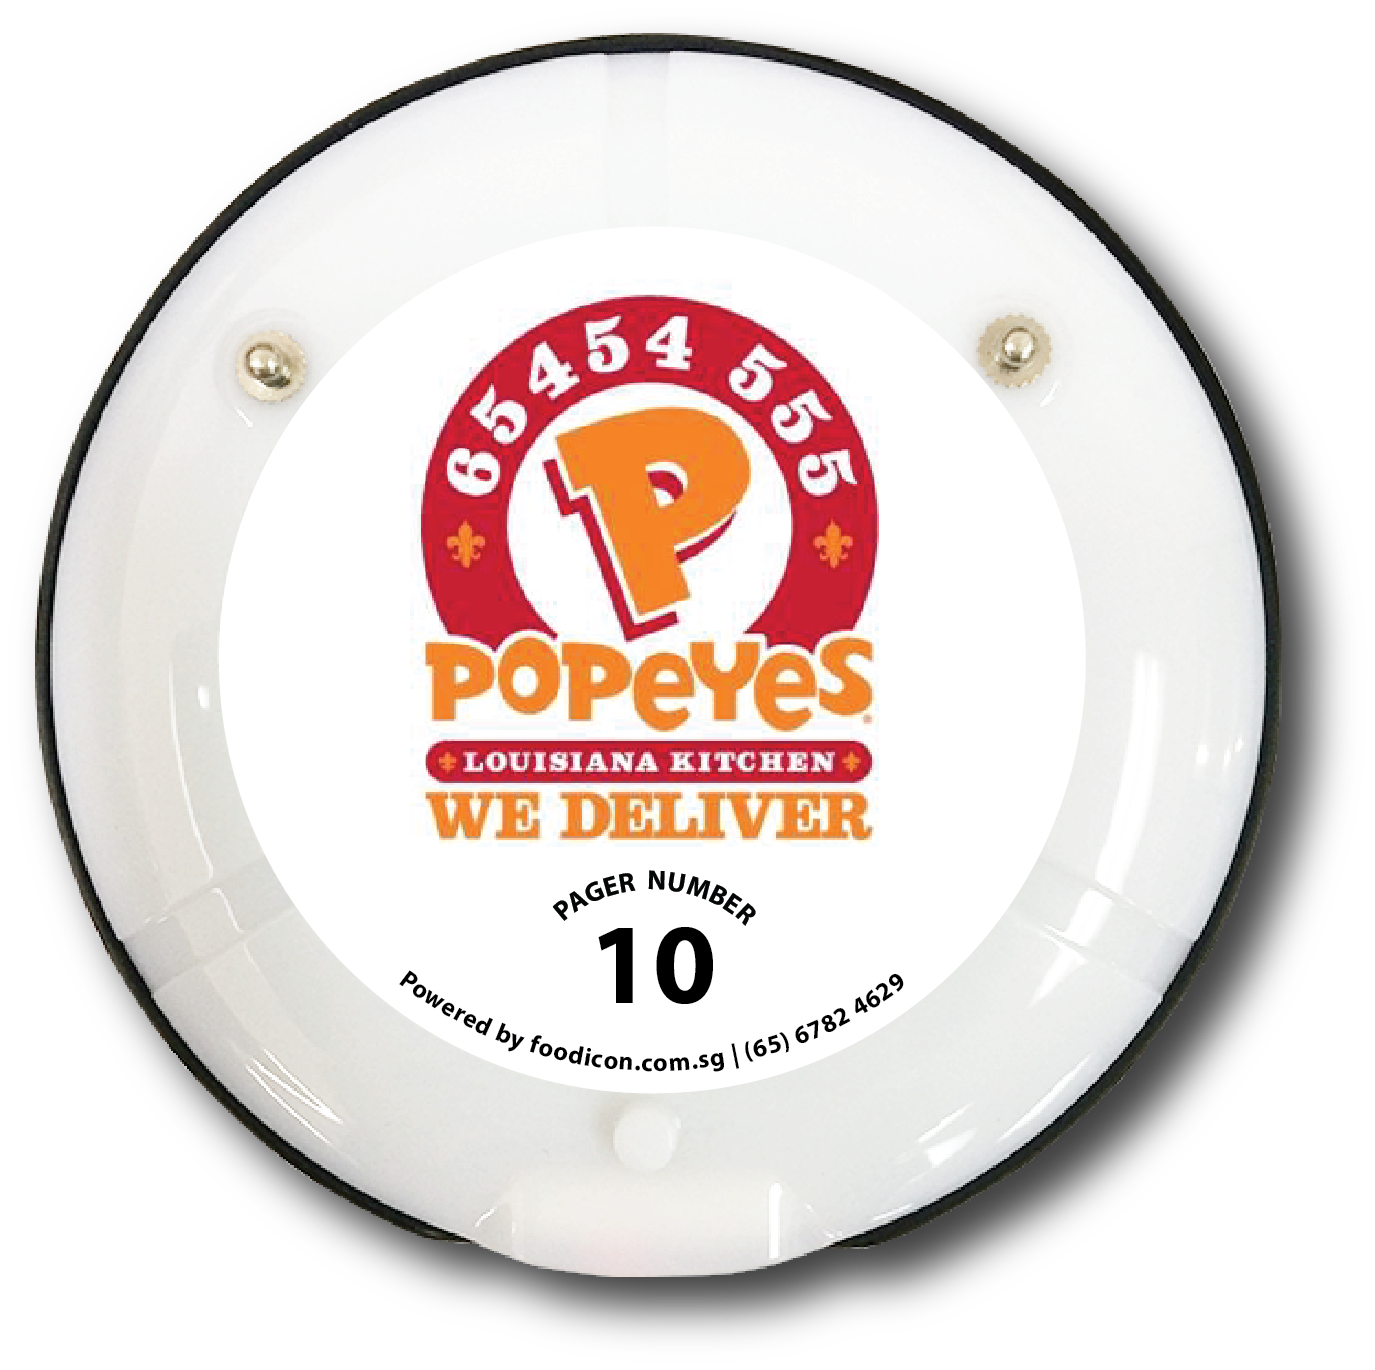 Food Icon Paging System - Popeyes